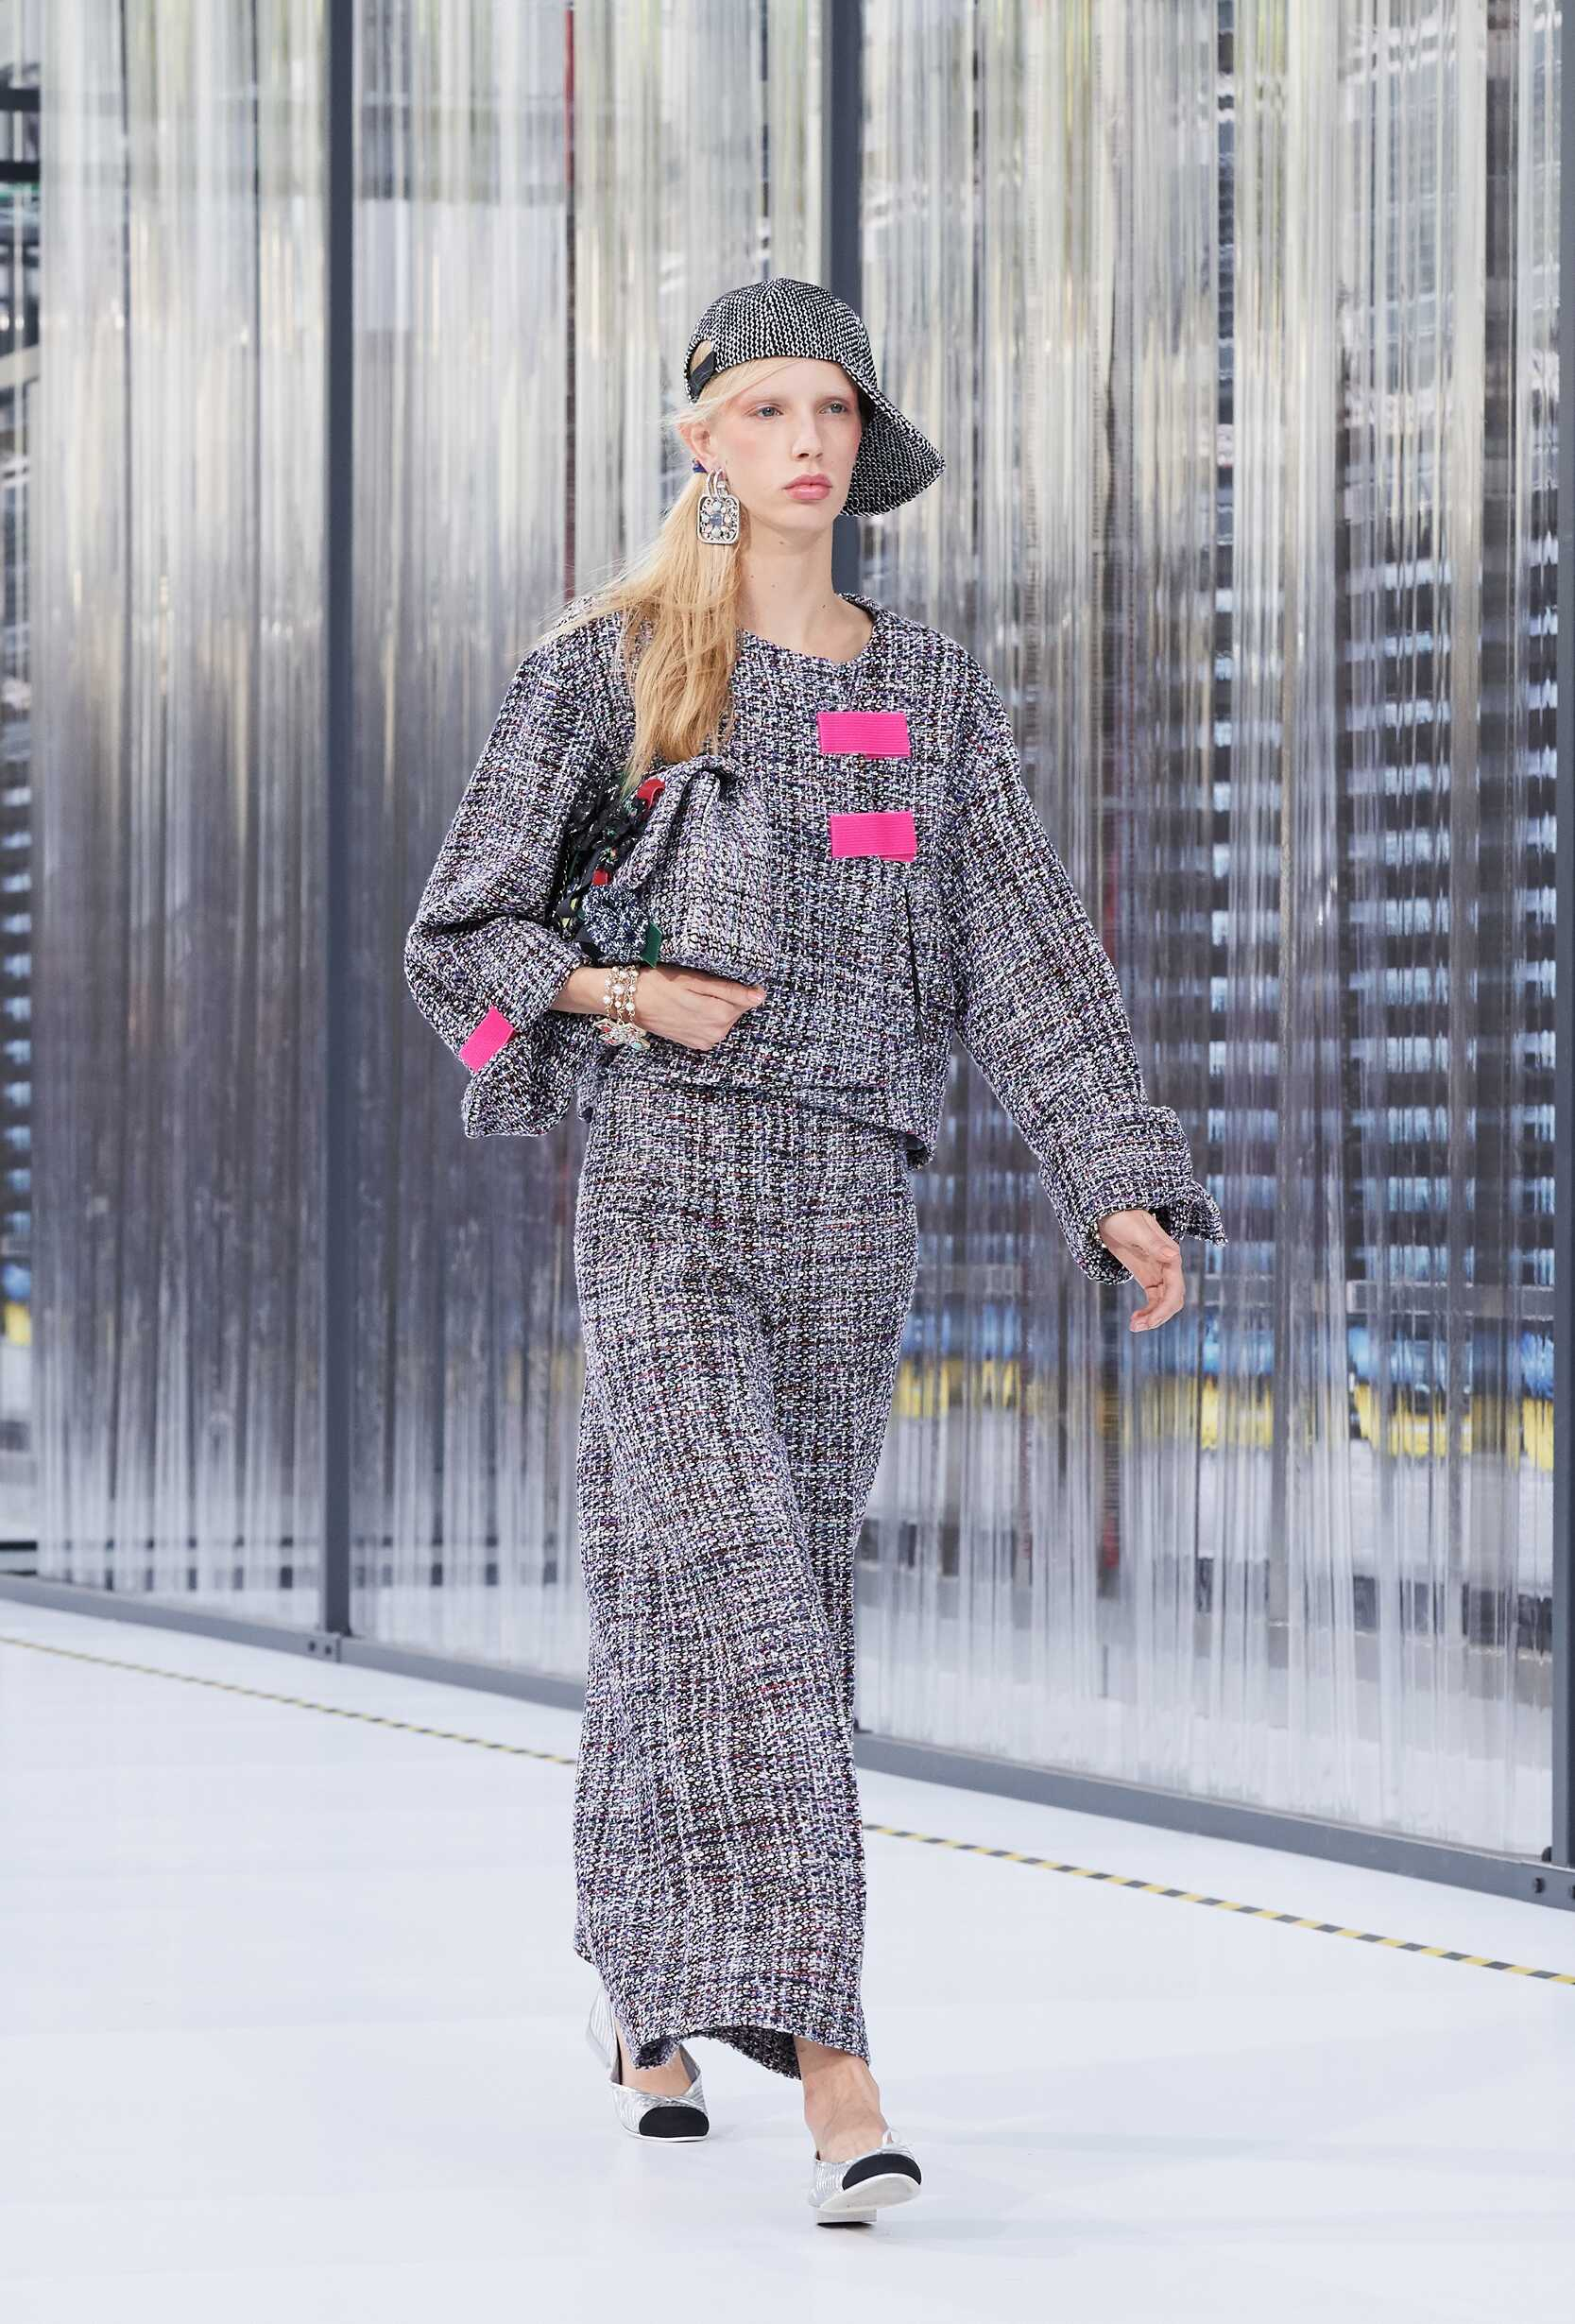 Chanel Spring 2017 Catwalk